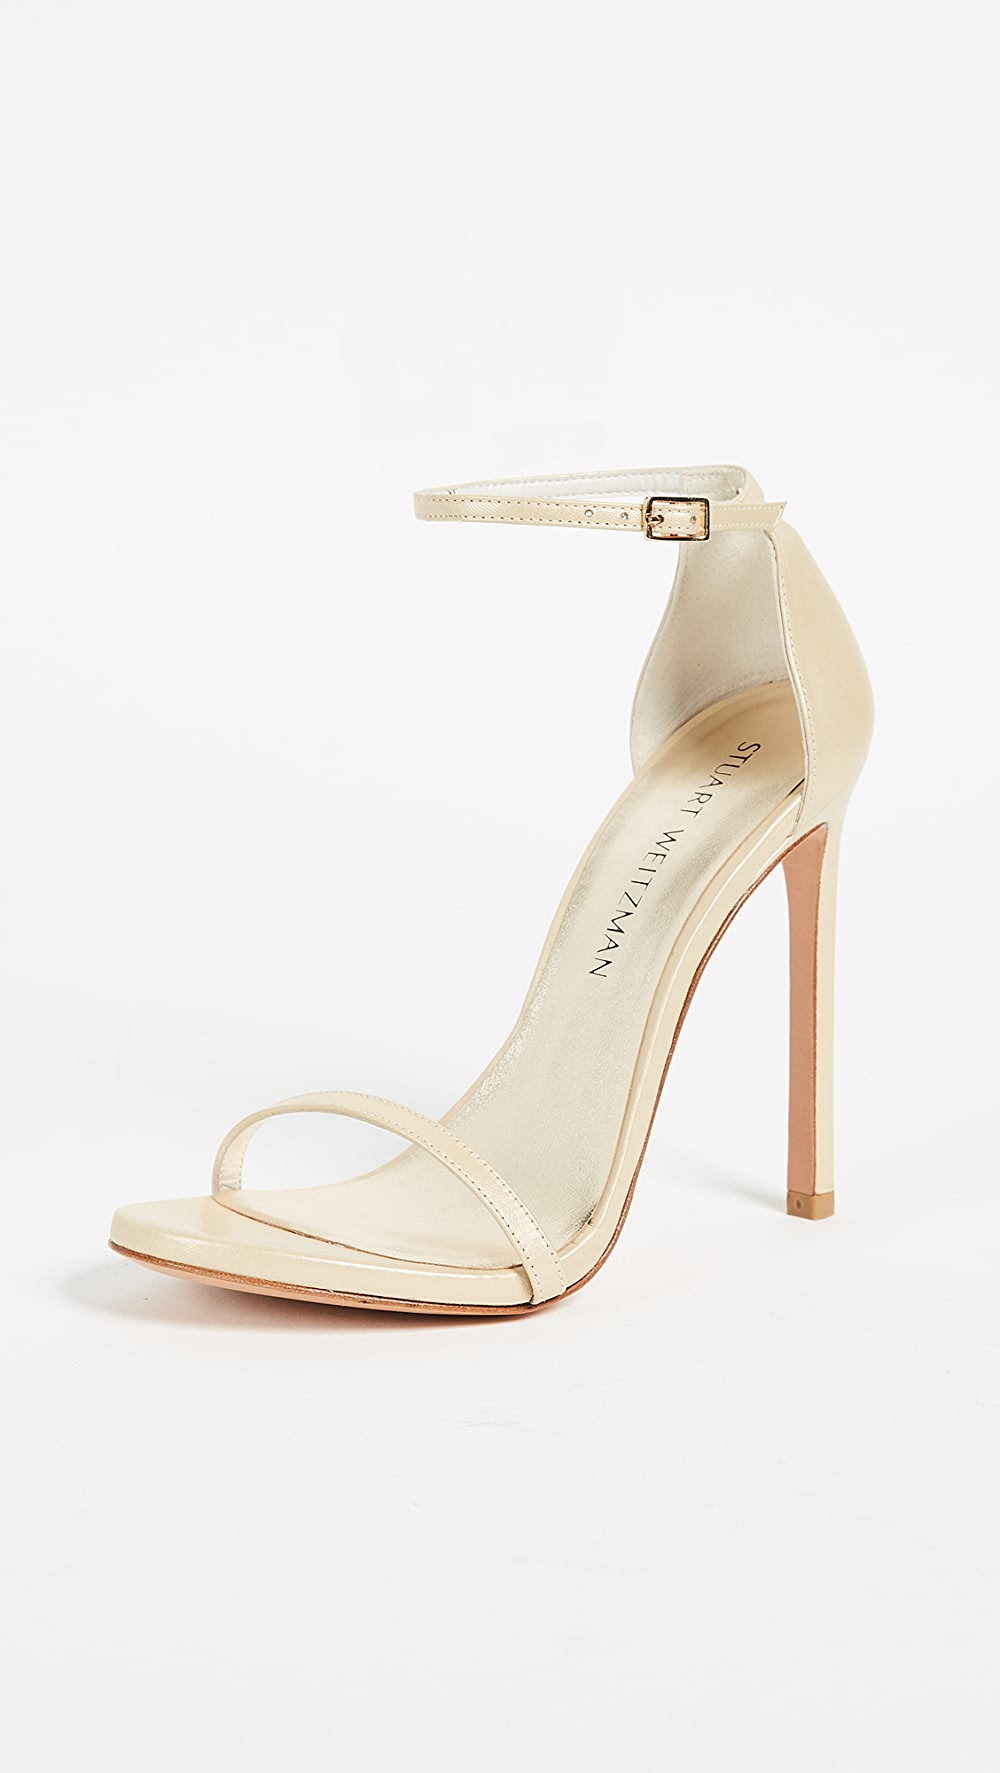 Adaptable Stuart Weitzman - Nudist Sandals Sale Overall Discount 50-70%